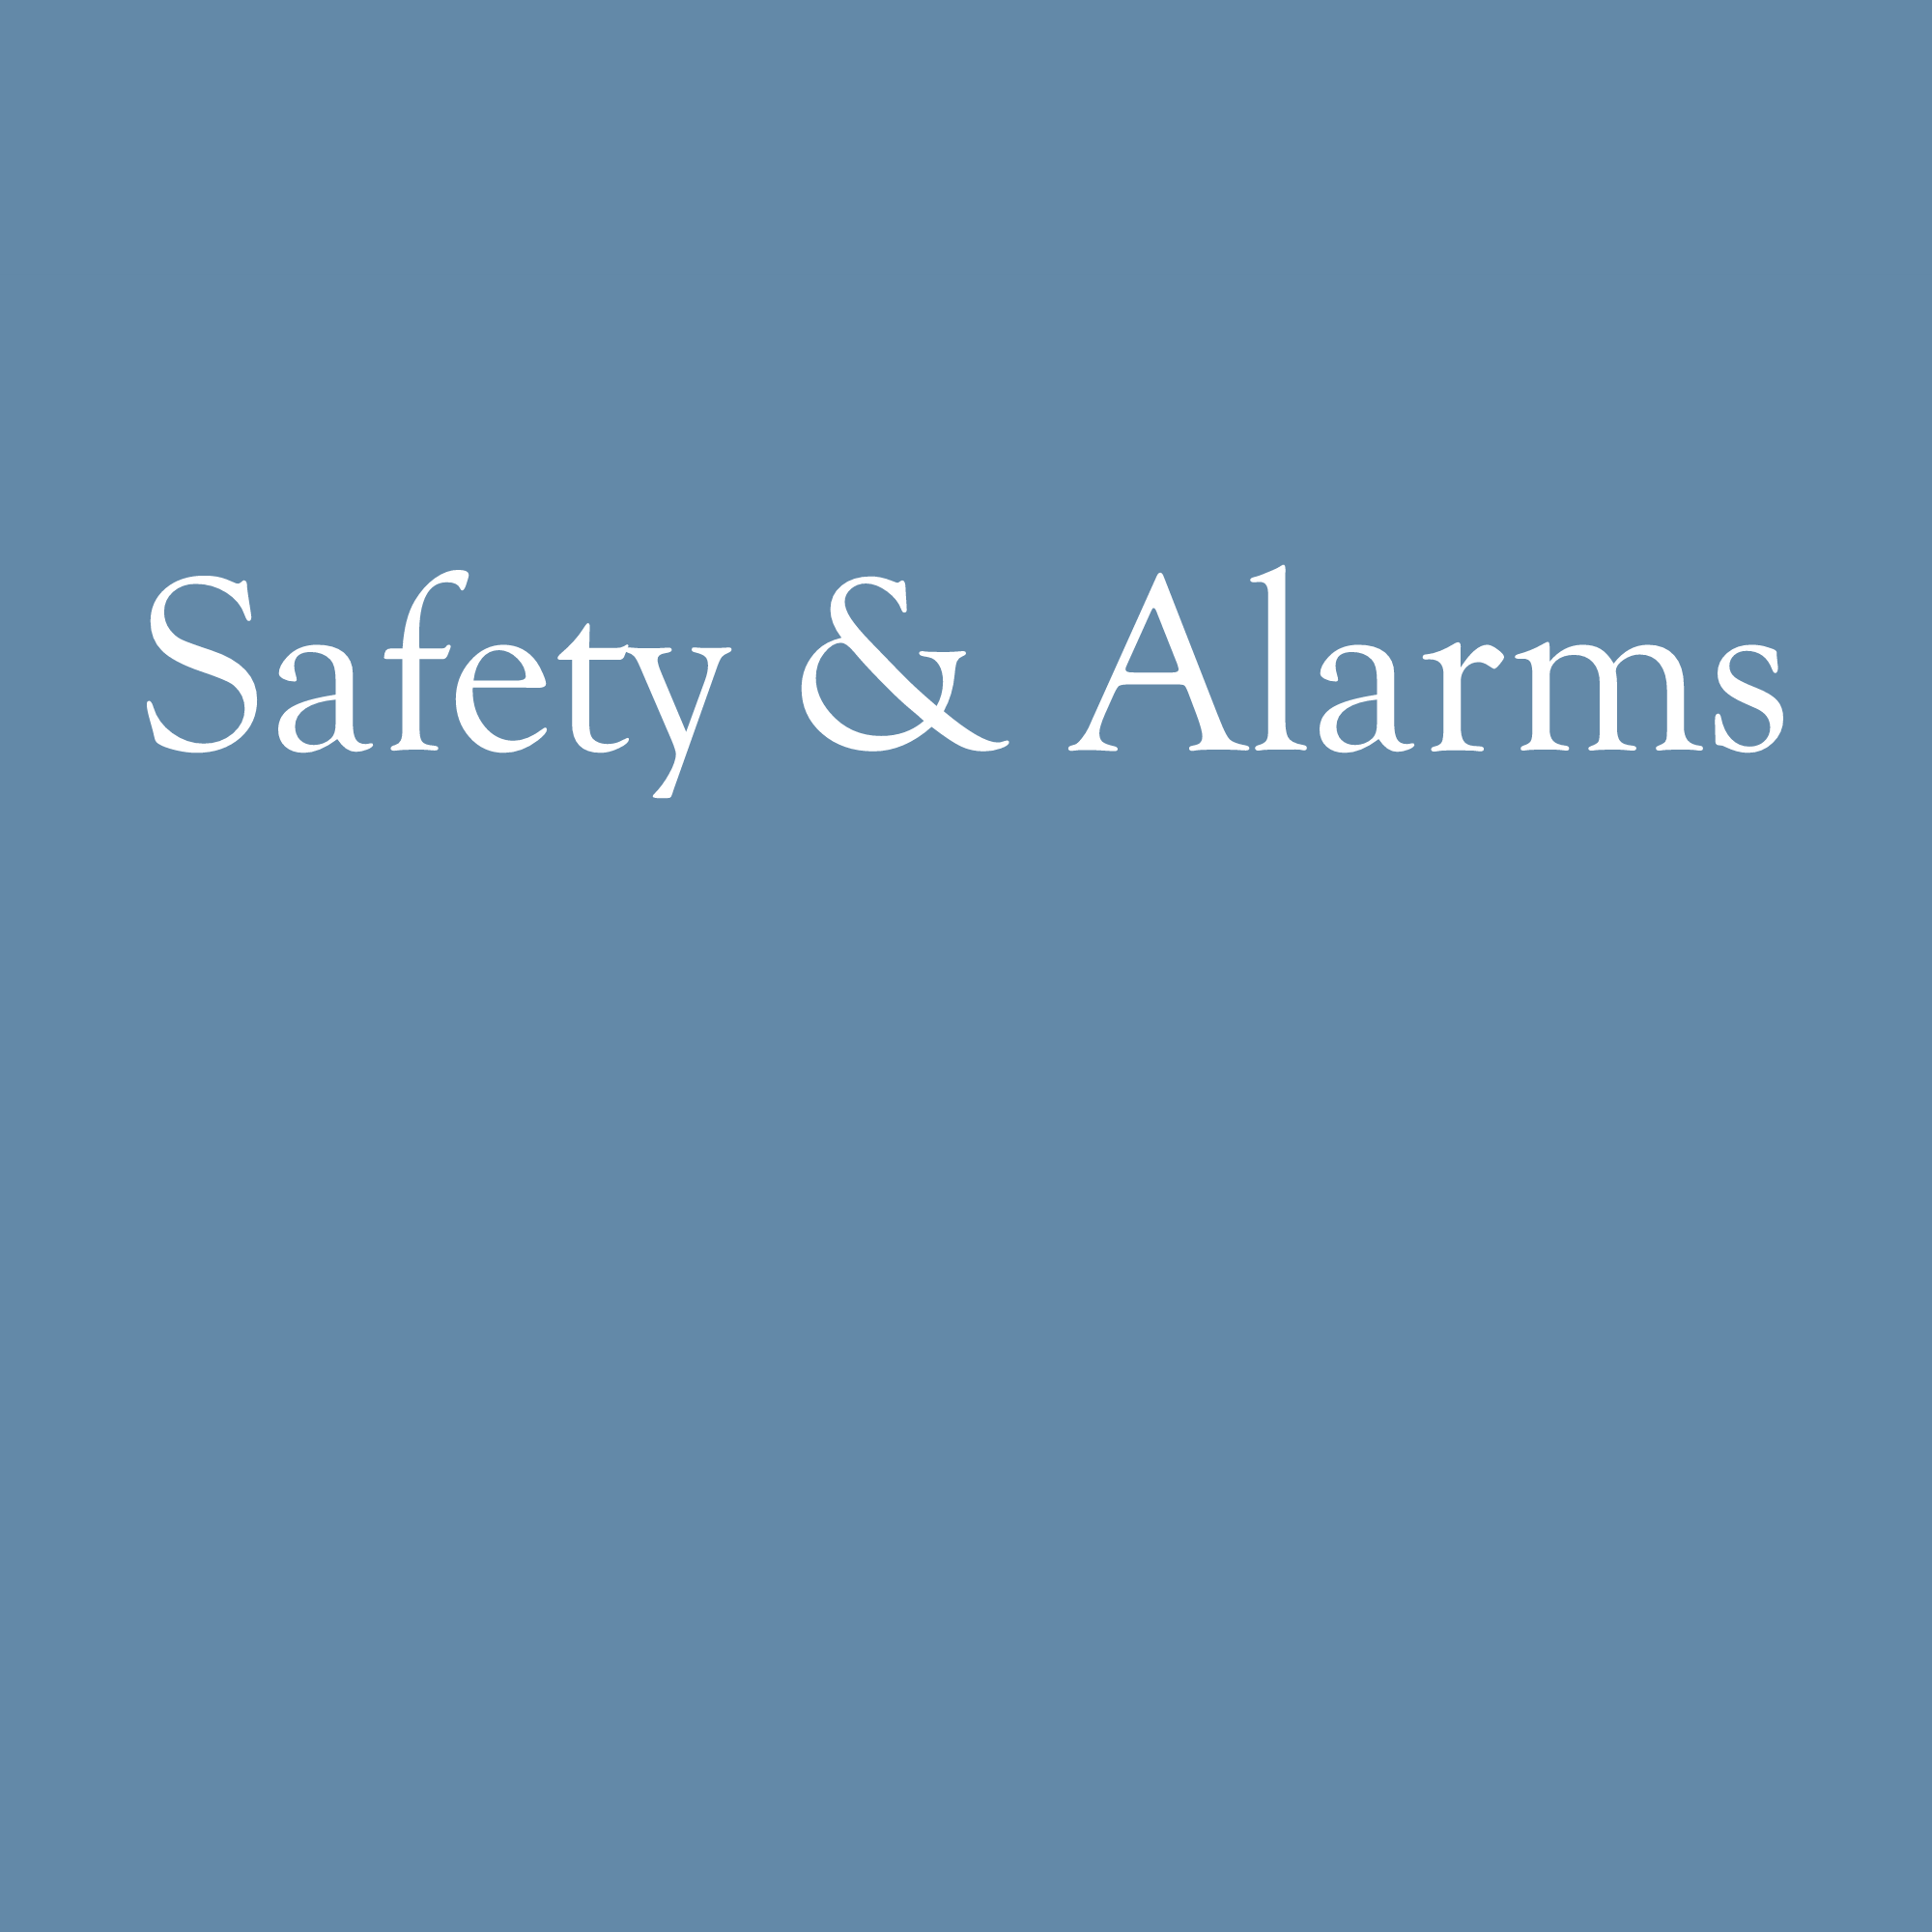 Safety and Alarms